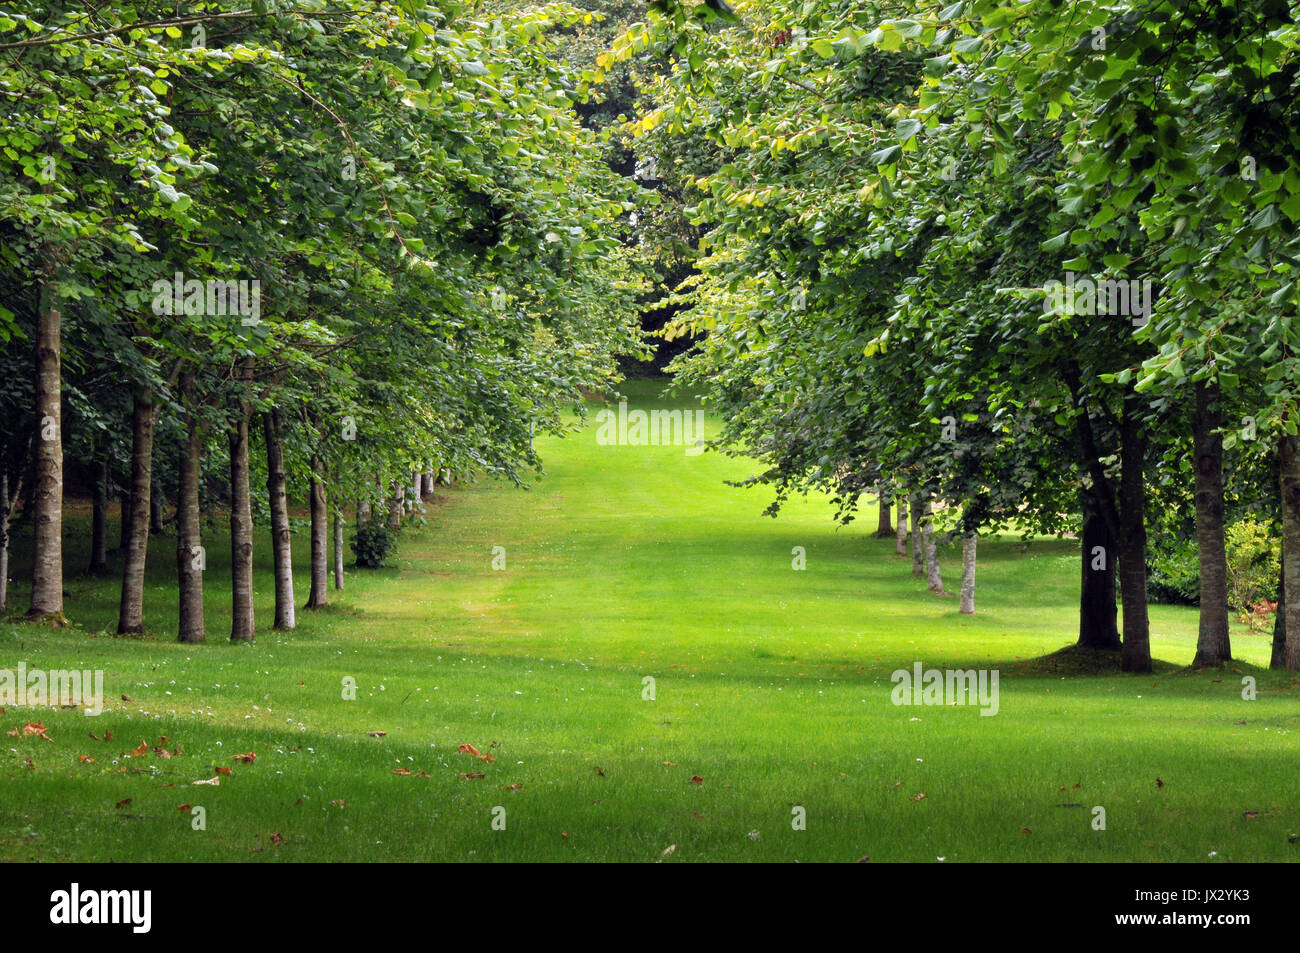 the landscaped gardens and avenues of trees at prideaux place manor house in padstow on the north Cornish coastline. - Stock Image